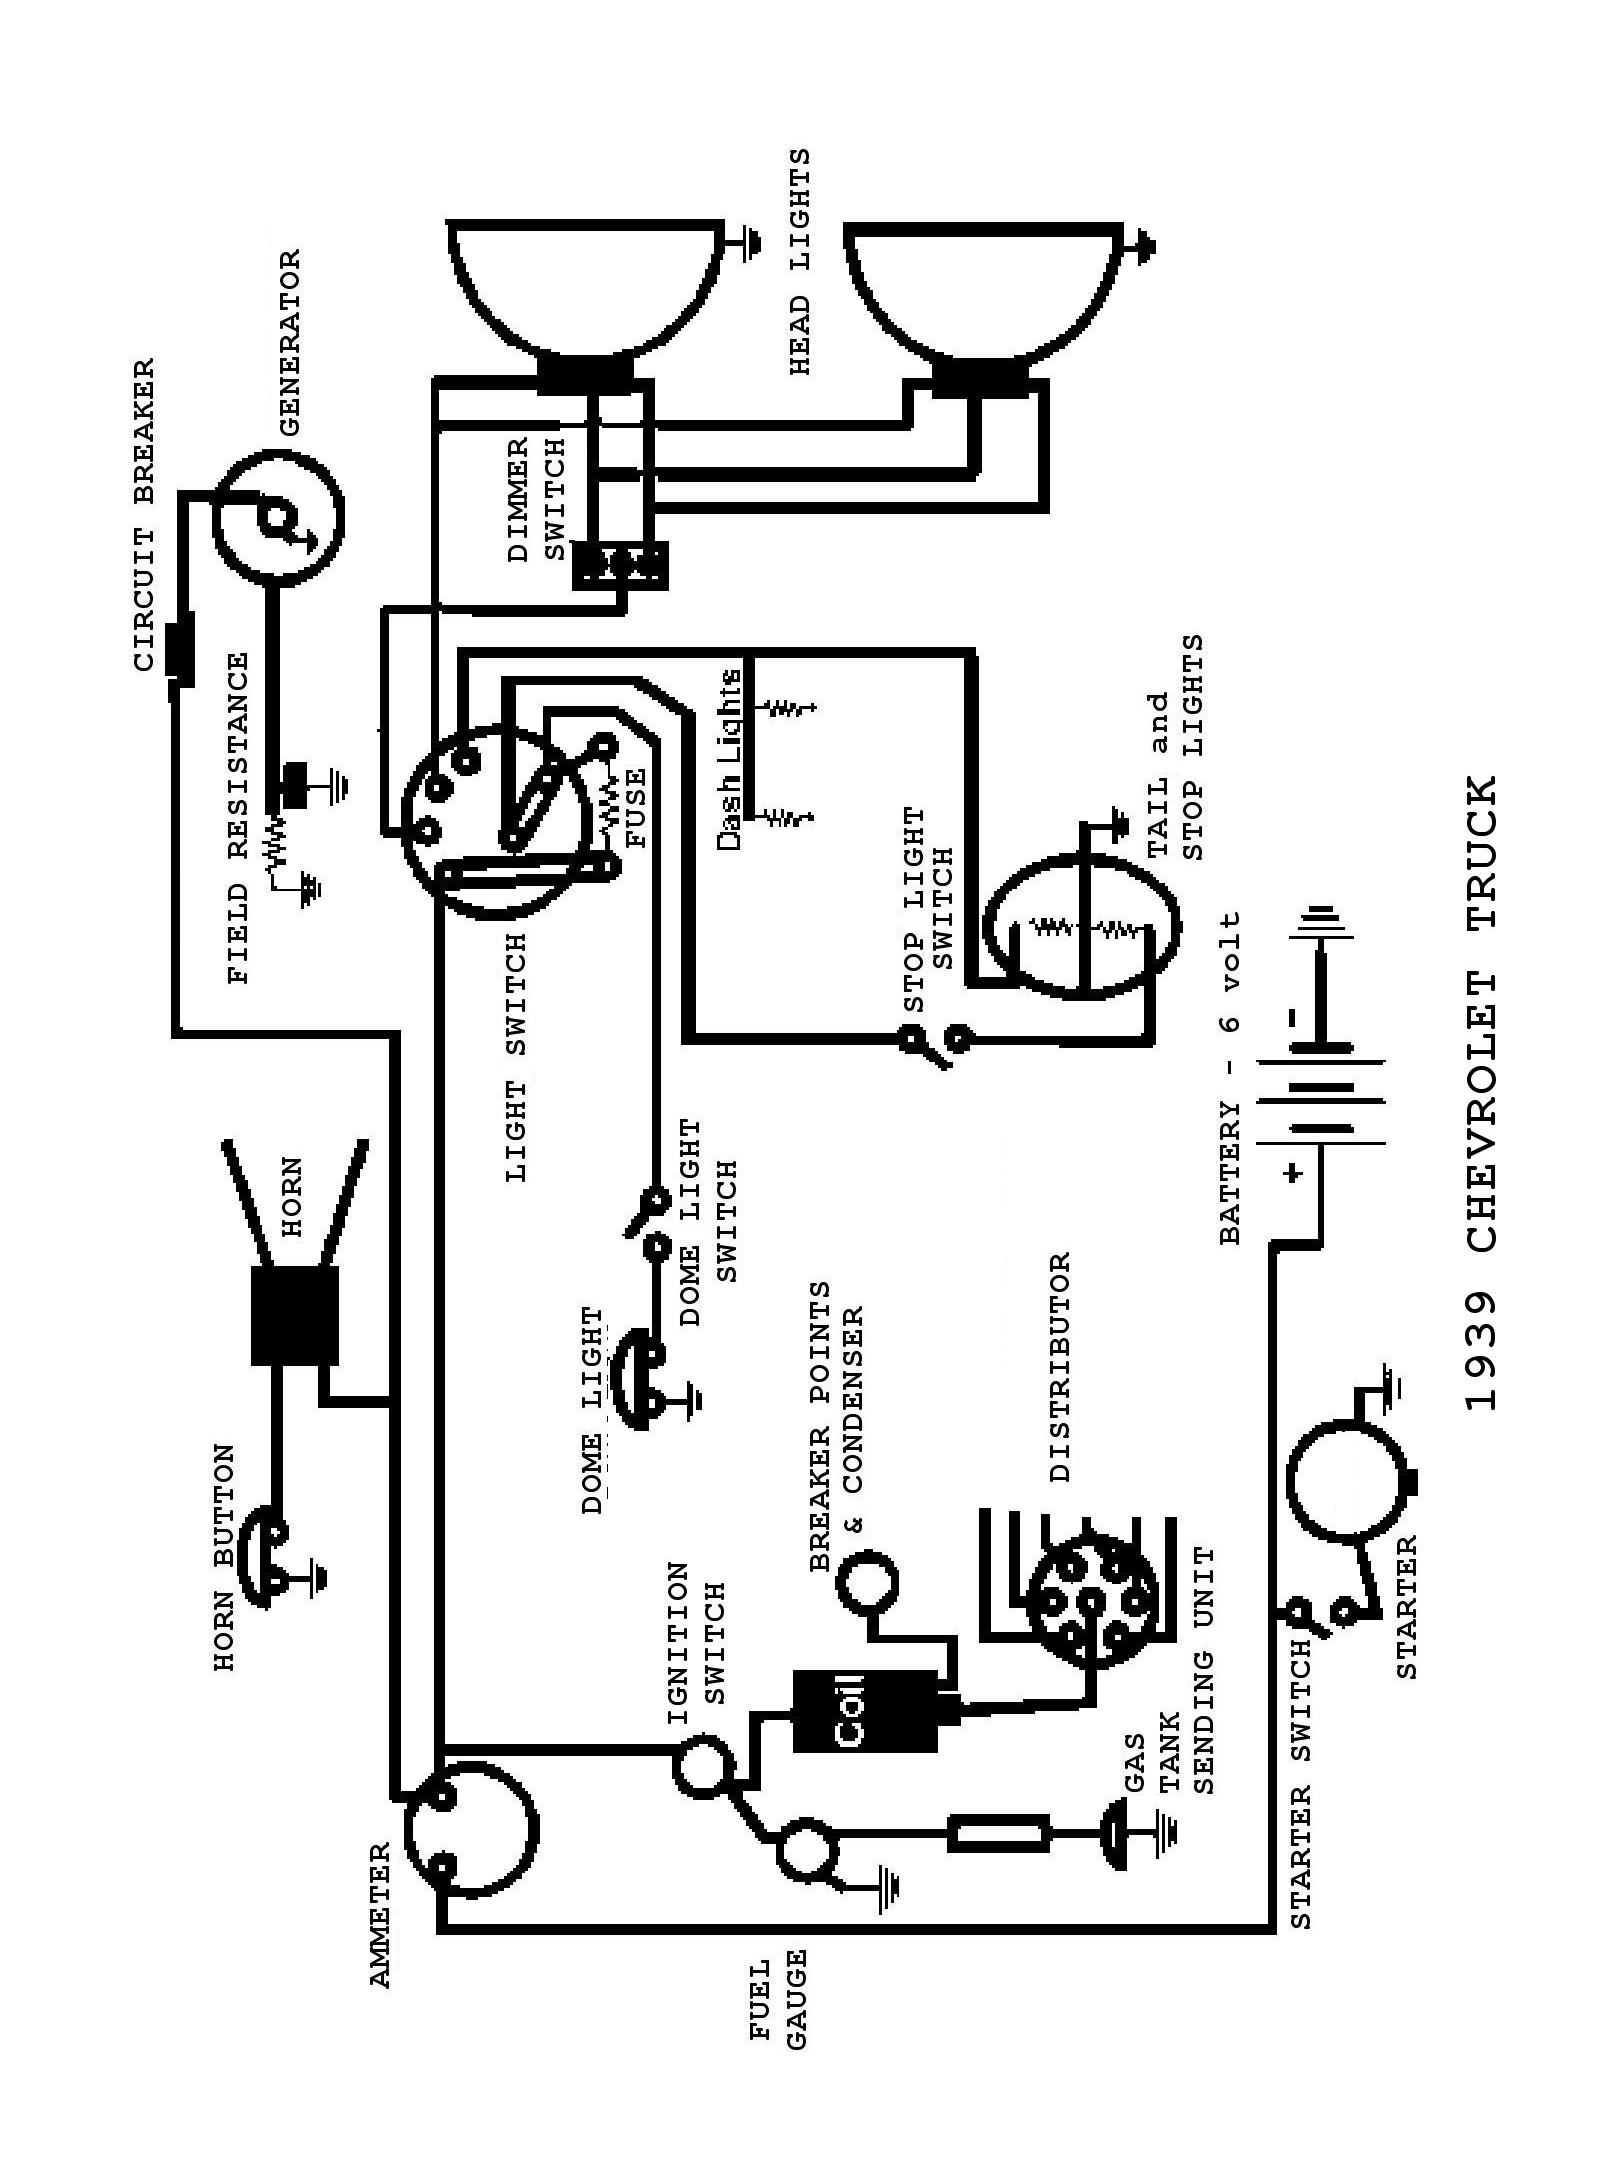 39truck ihc truck wiring diagrams mazda truck wiring diagrams \u2022 free  at eliteediting.co